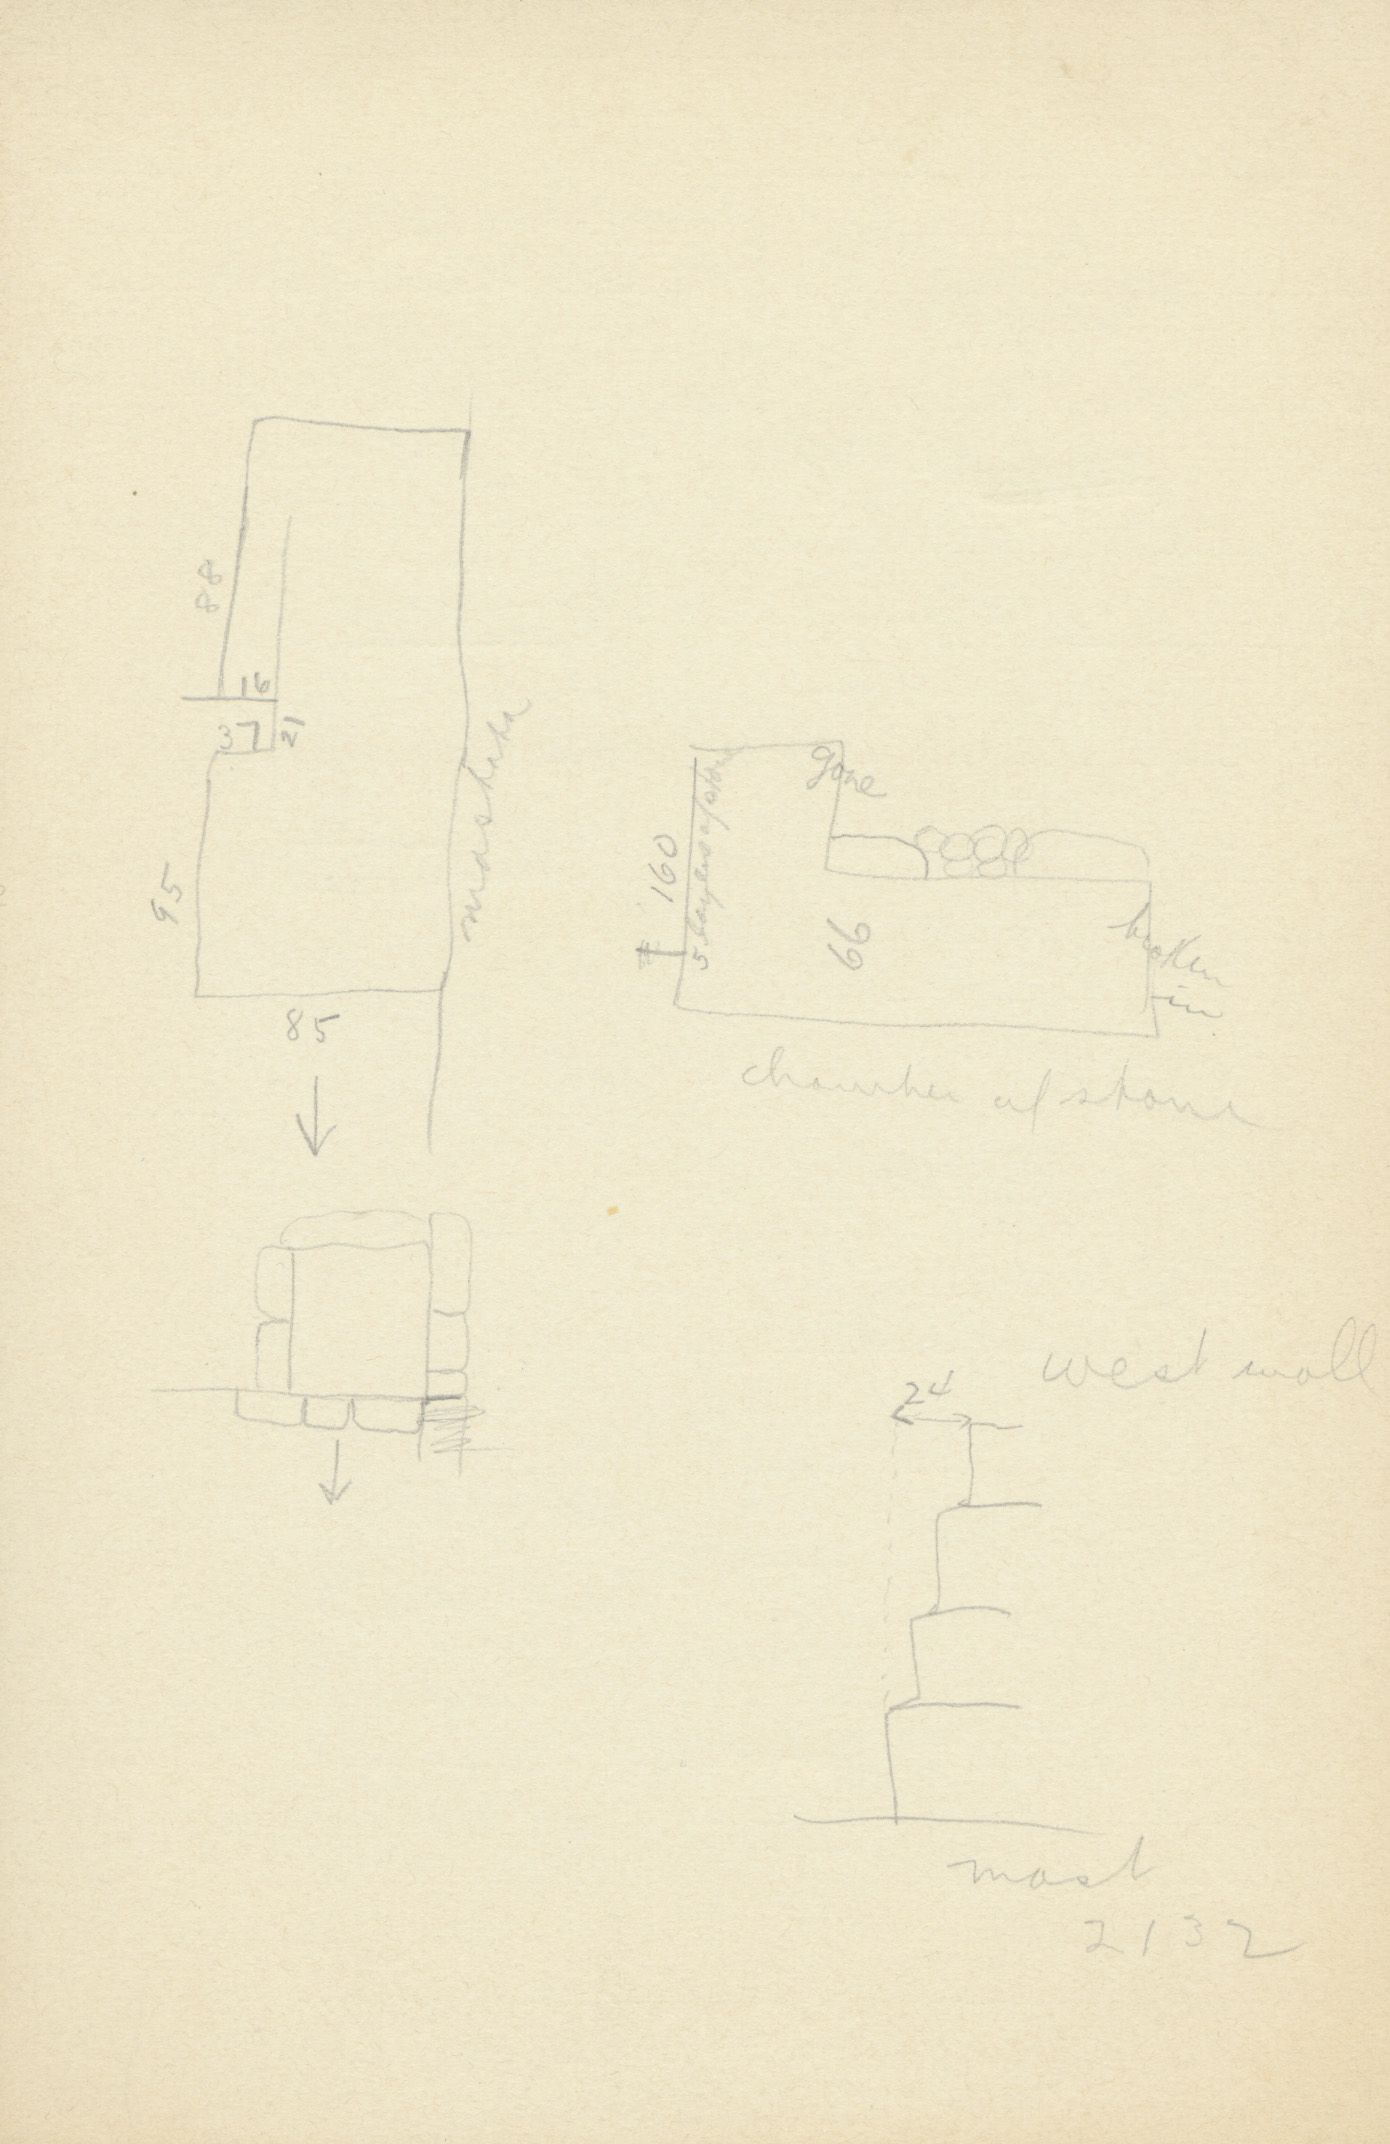 Maps and plans: G 2132, Shaft Y, notes